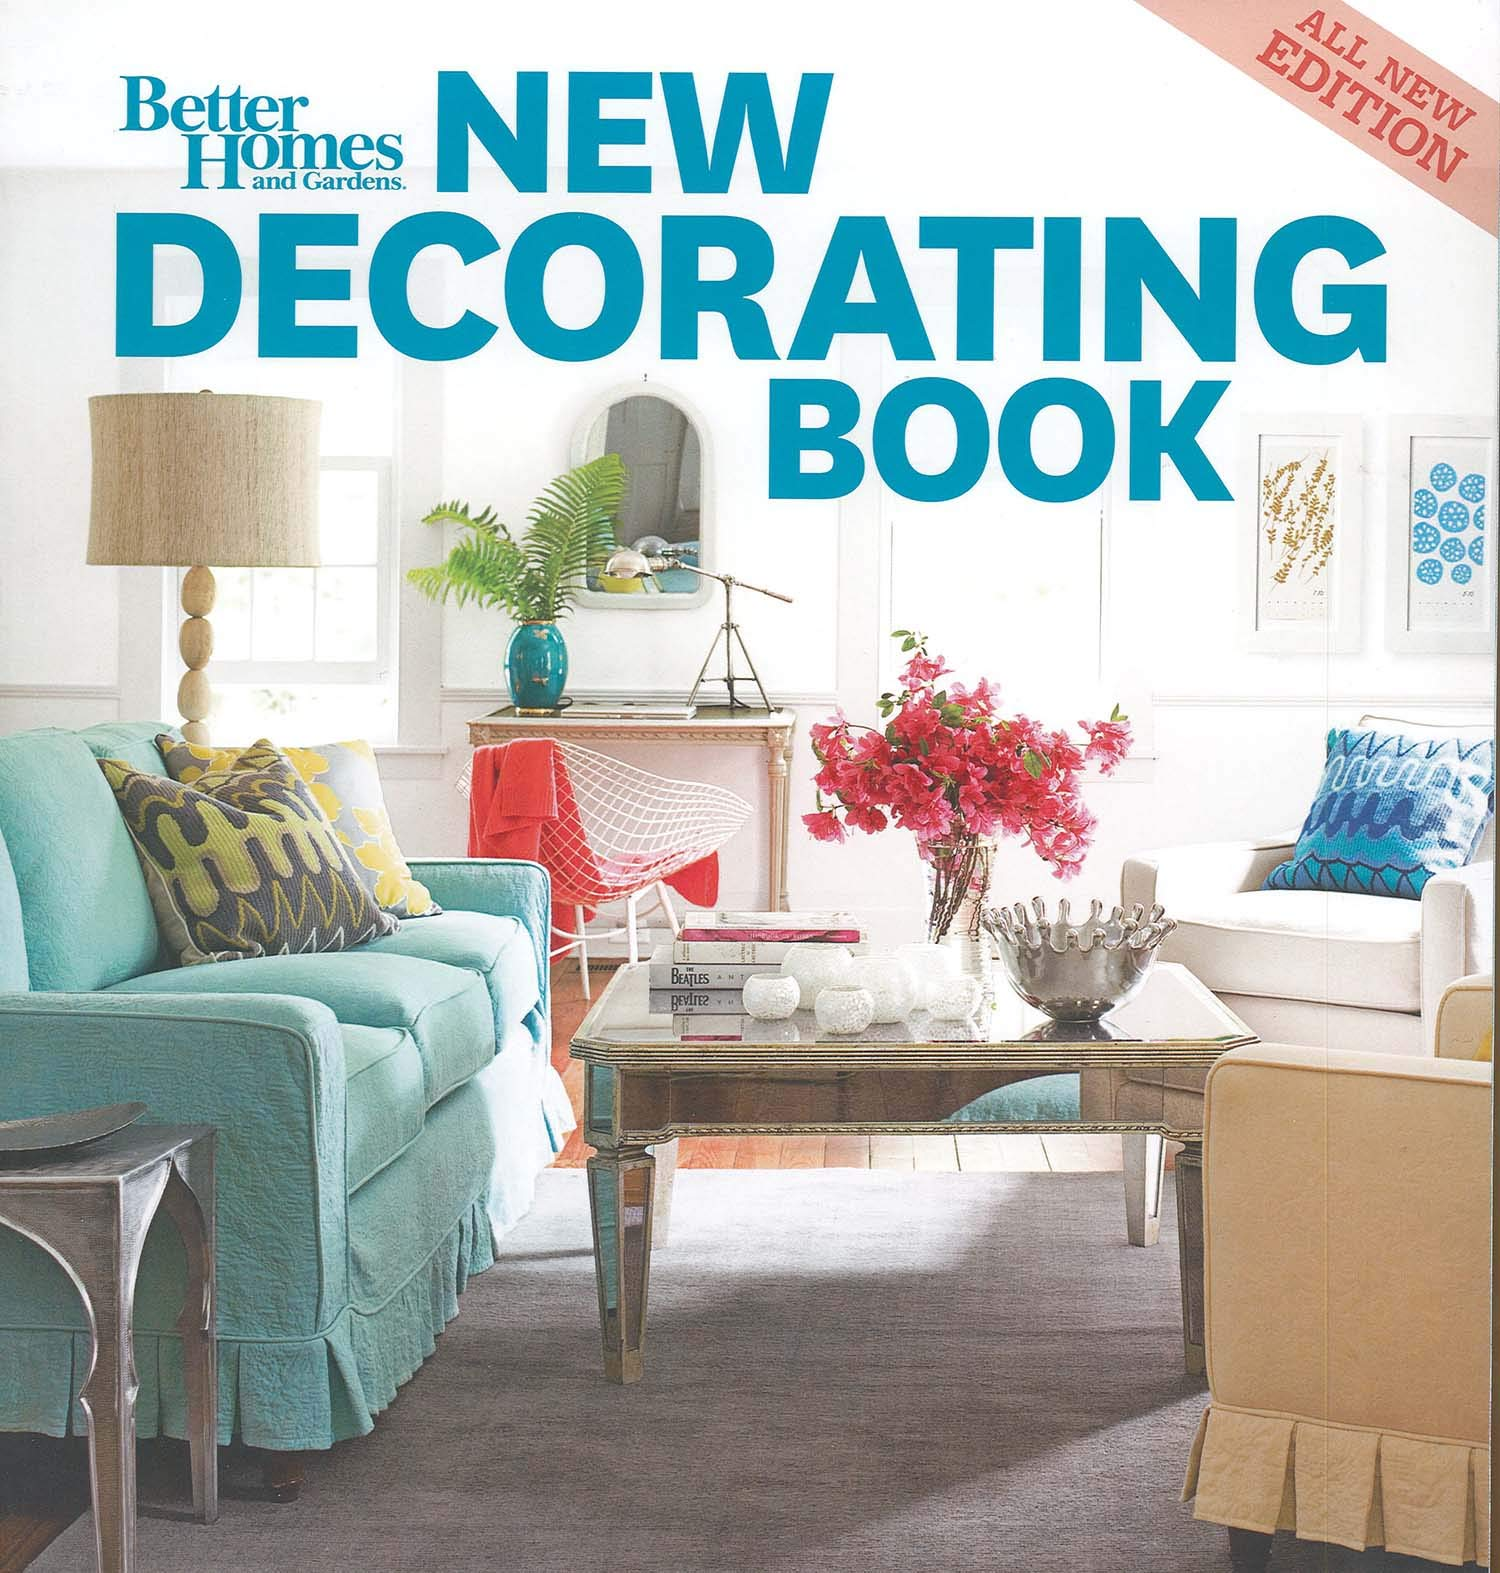 New Decorating Book, 10th Edition (Better Homes and Gardens) (Better Homes  and Gardens Home) (Better Homes & Gardens Decorating): Better Homes &  Gardens: 9780470887141: Amazon.com: Books